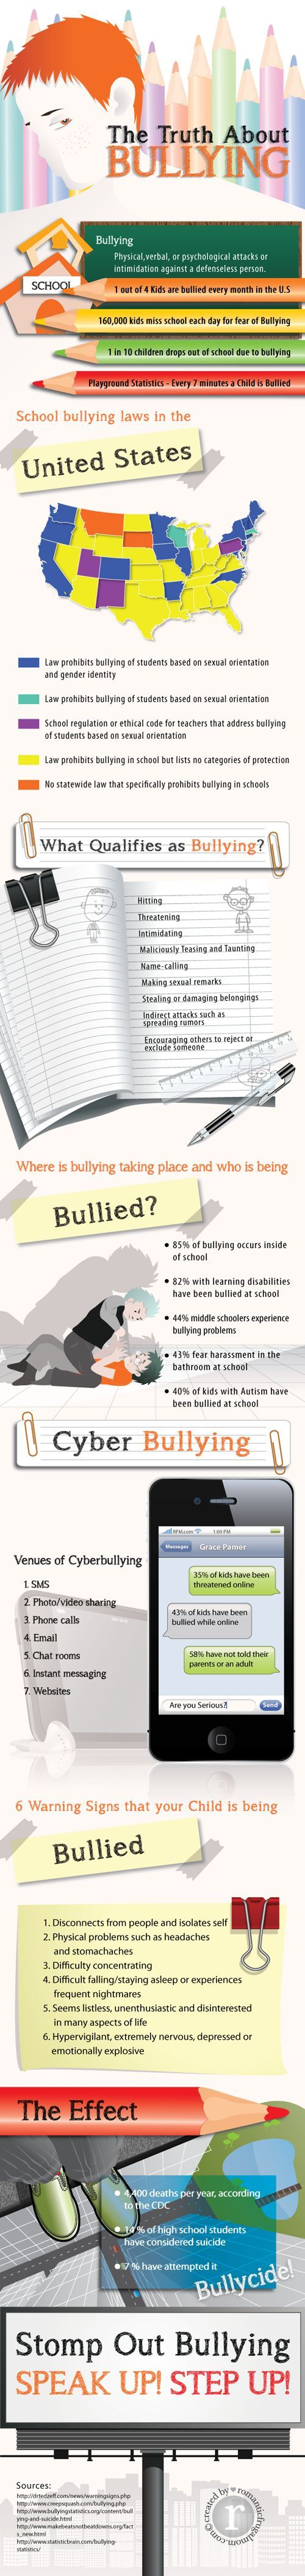 A lot of Stated have Bullying Laws, but no protection for the victim. No guidelines or discipline for the Bully.  #bullying #bullied #bullys: